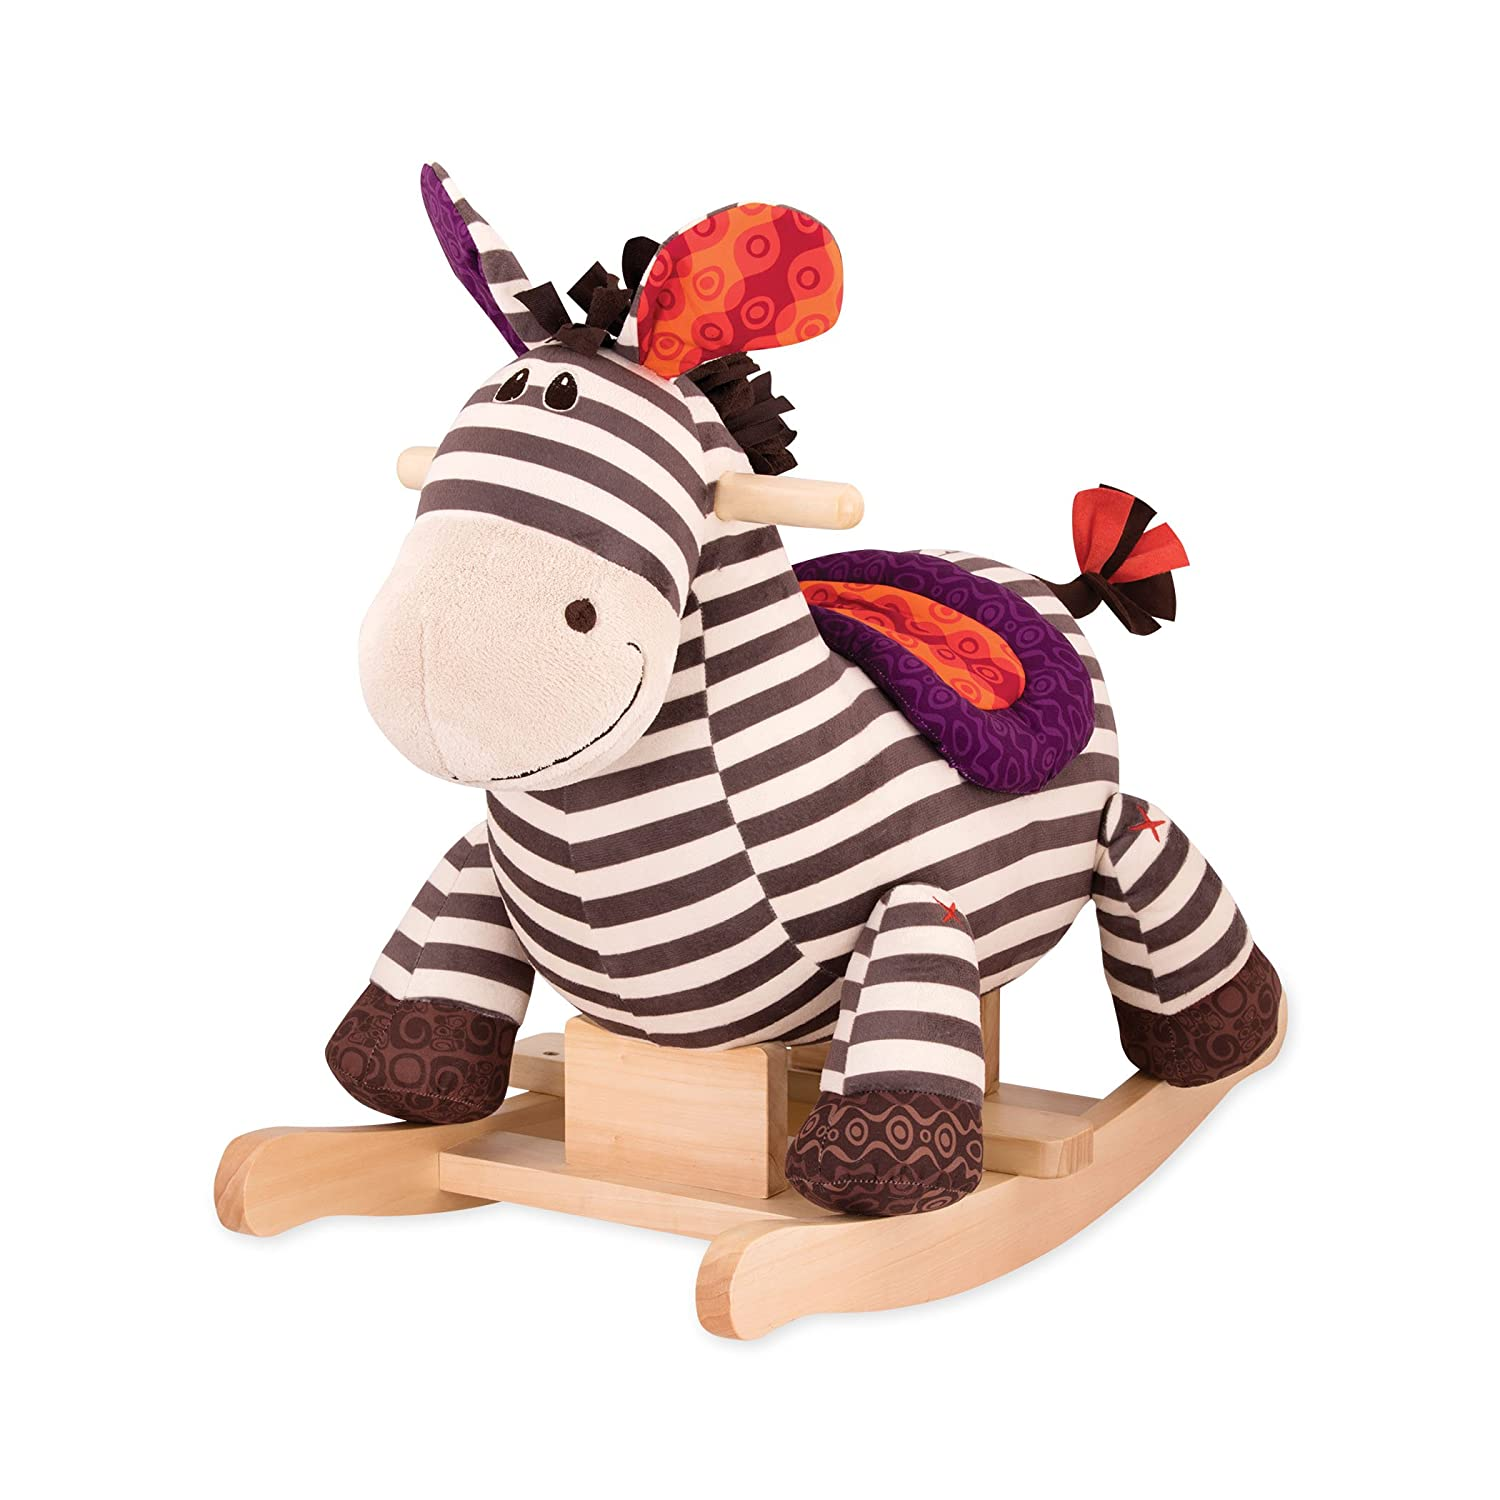 B toys – Kazoo Wooden Rocking Zebra – Rodeo Rocker – BPA Free Plush Ride On Zebra Rocking Horse for Toddlers and Babies 18m+